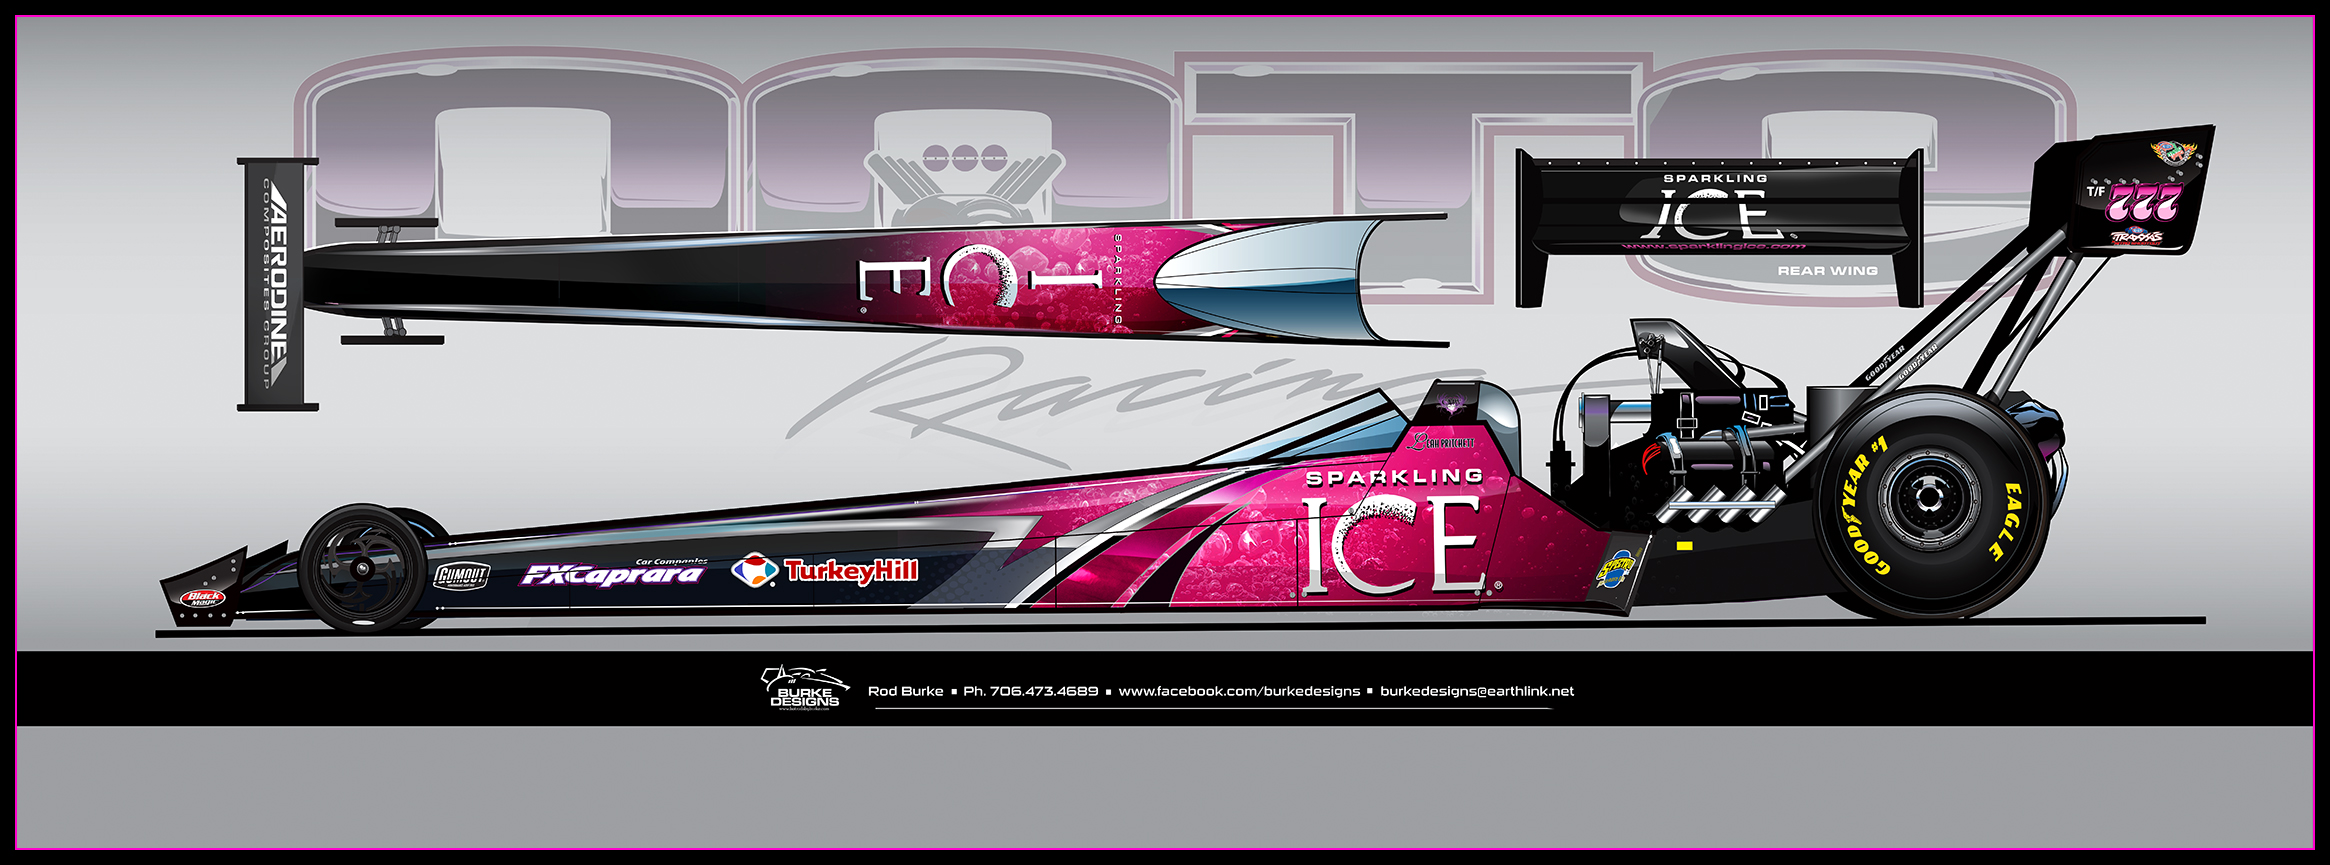 SPARKLING ICE PRIMARY SPONSOR OF DOTE RACING TOP FUEL DRAGSTER IN